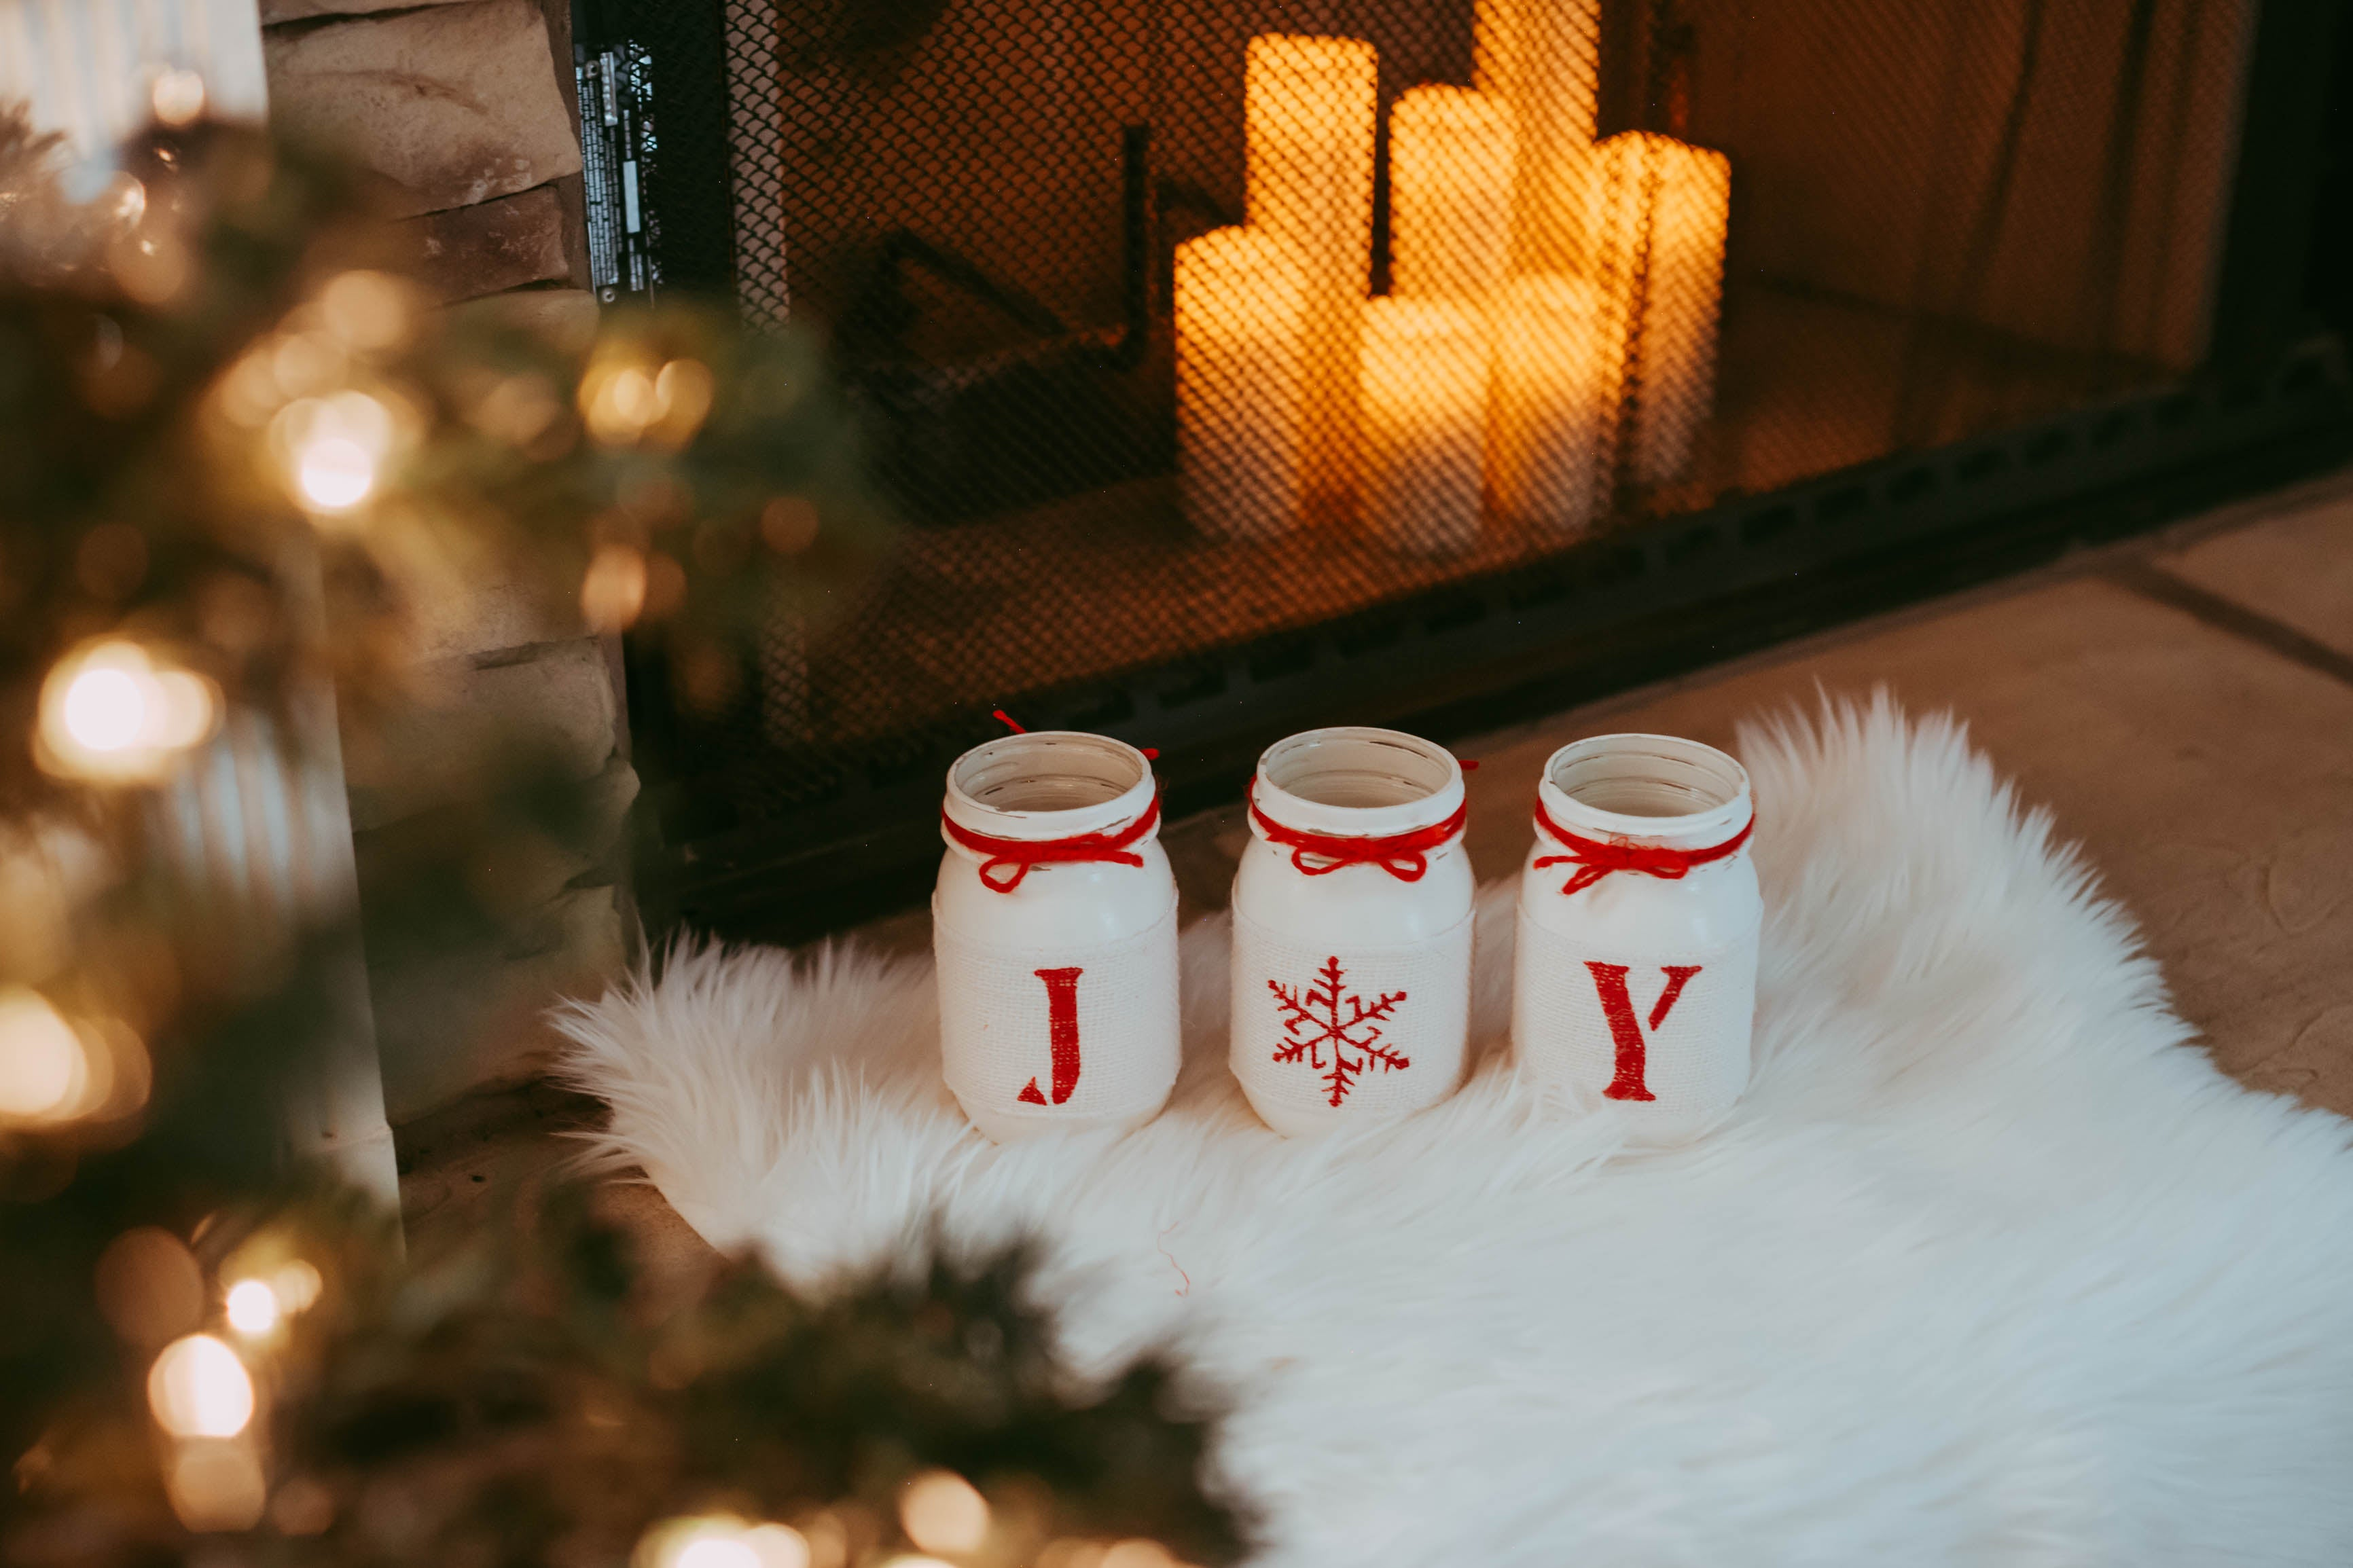 Rustic Christmas Table Decor Joy Christmas White Red Holiday Home Decor Jarful House